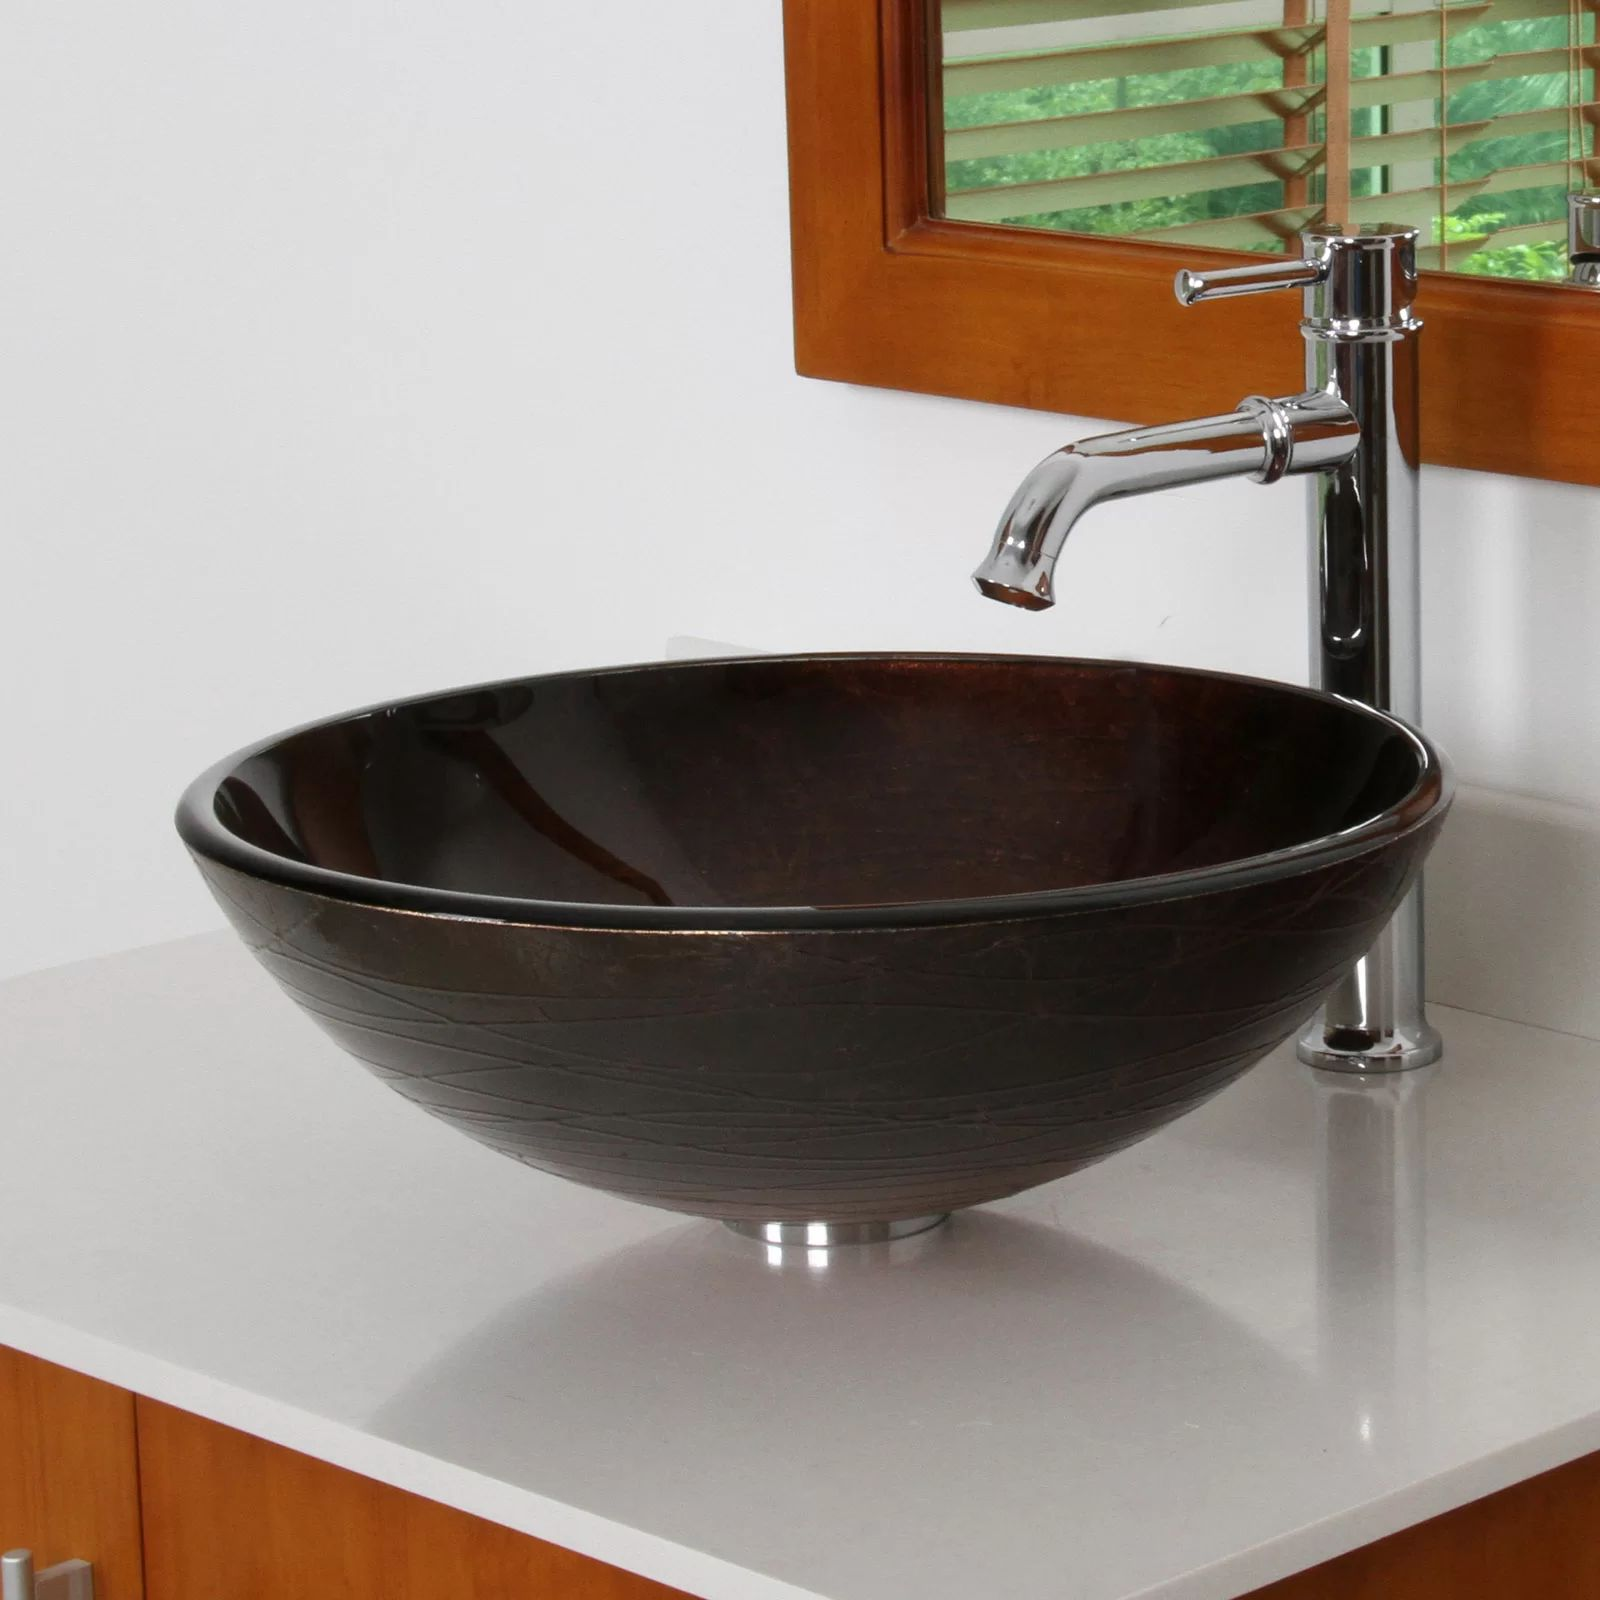 Bathroom Sinks Glass Bowls glass bowl bathroom sink